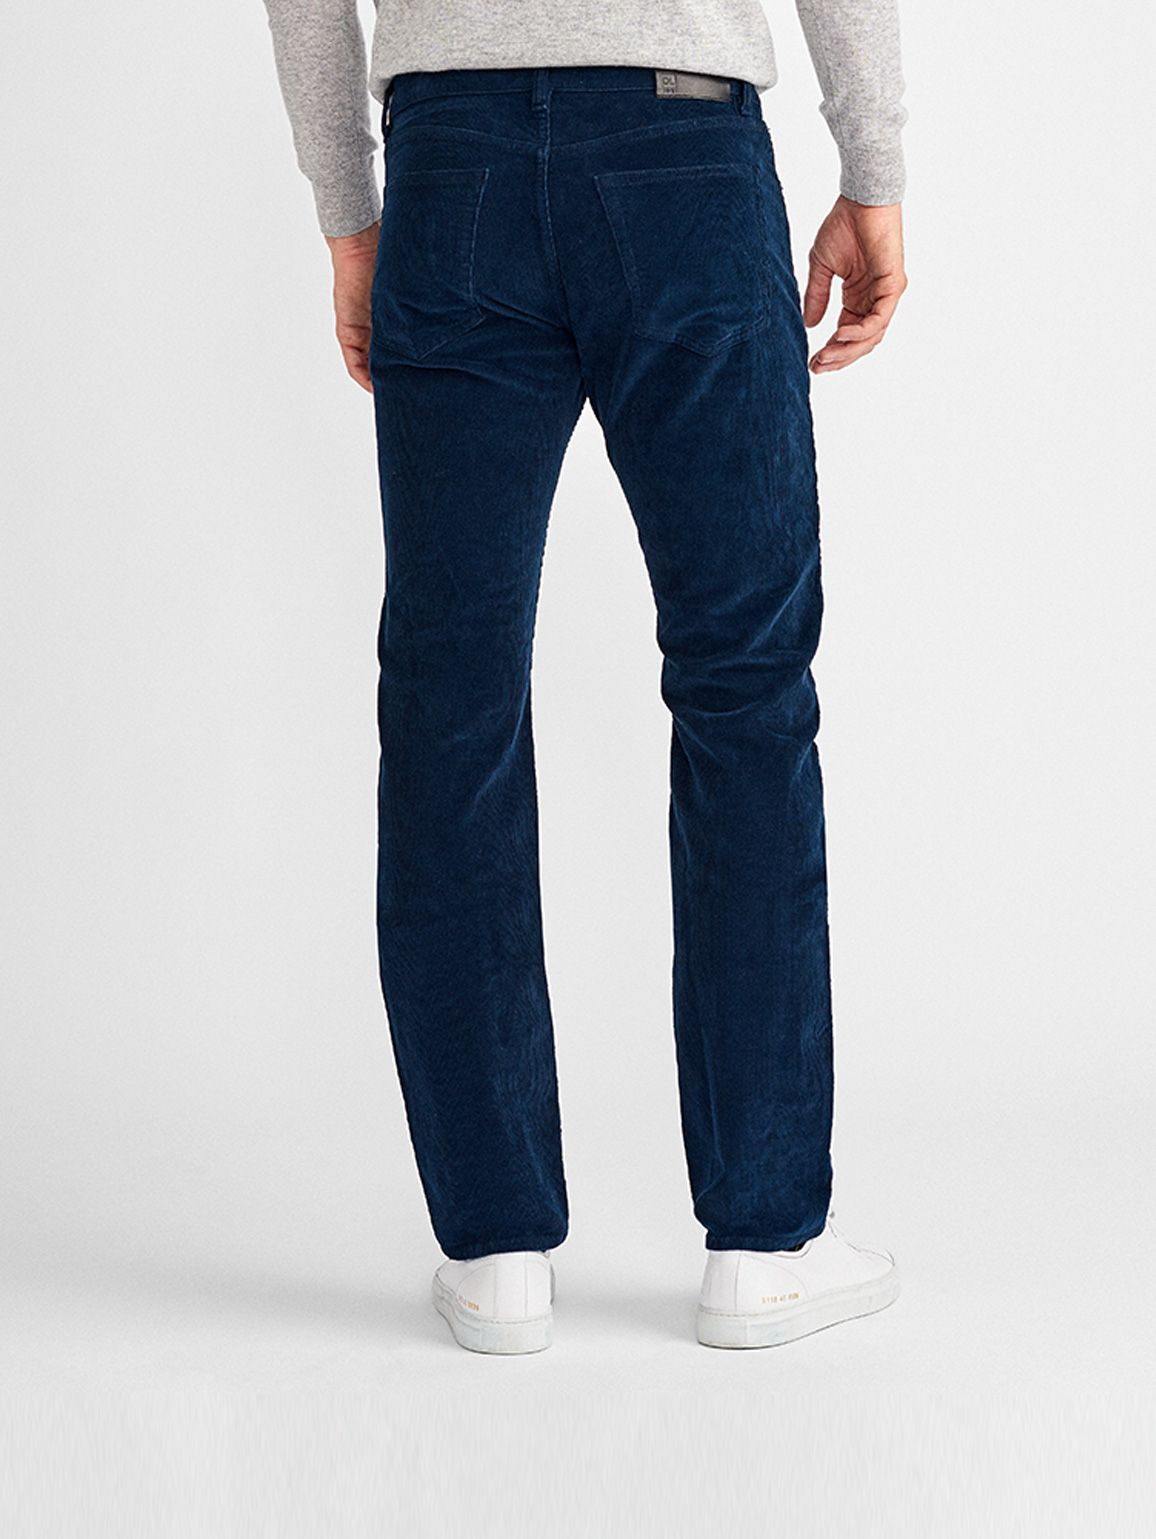 Men - Russell Slim Straight | Scout - DL1961